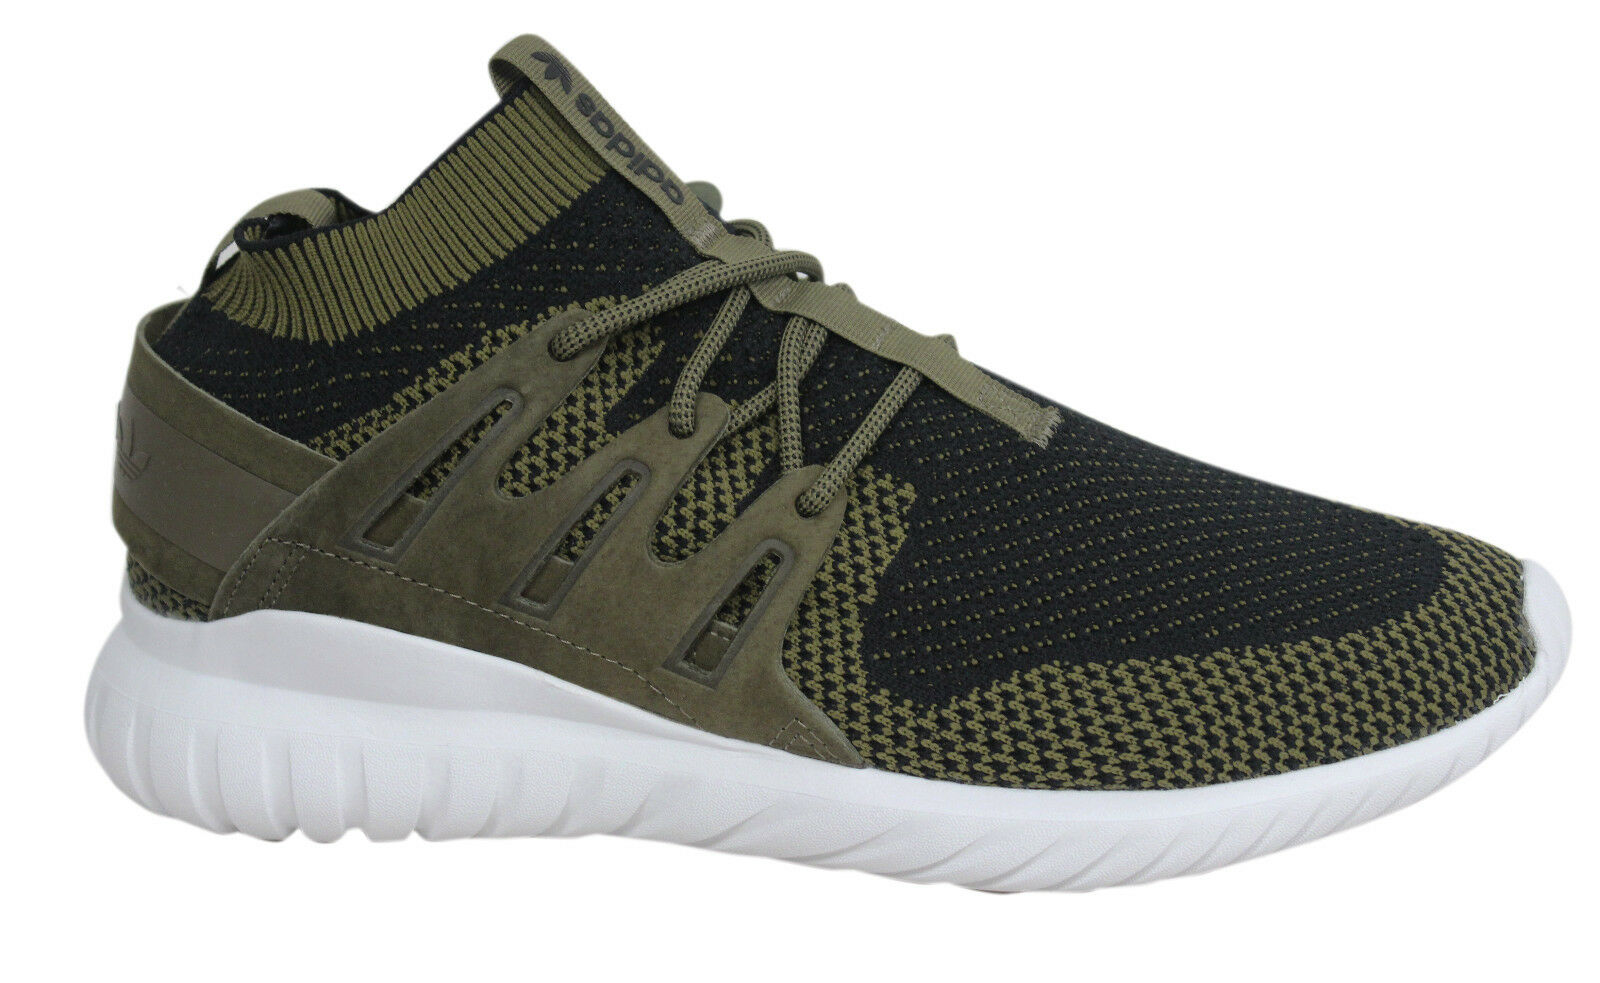 Adidas Tubular Nova PK Lace Up Olive Green Black Sock Mens Trainers S80111 D115